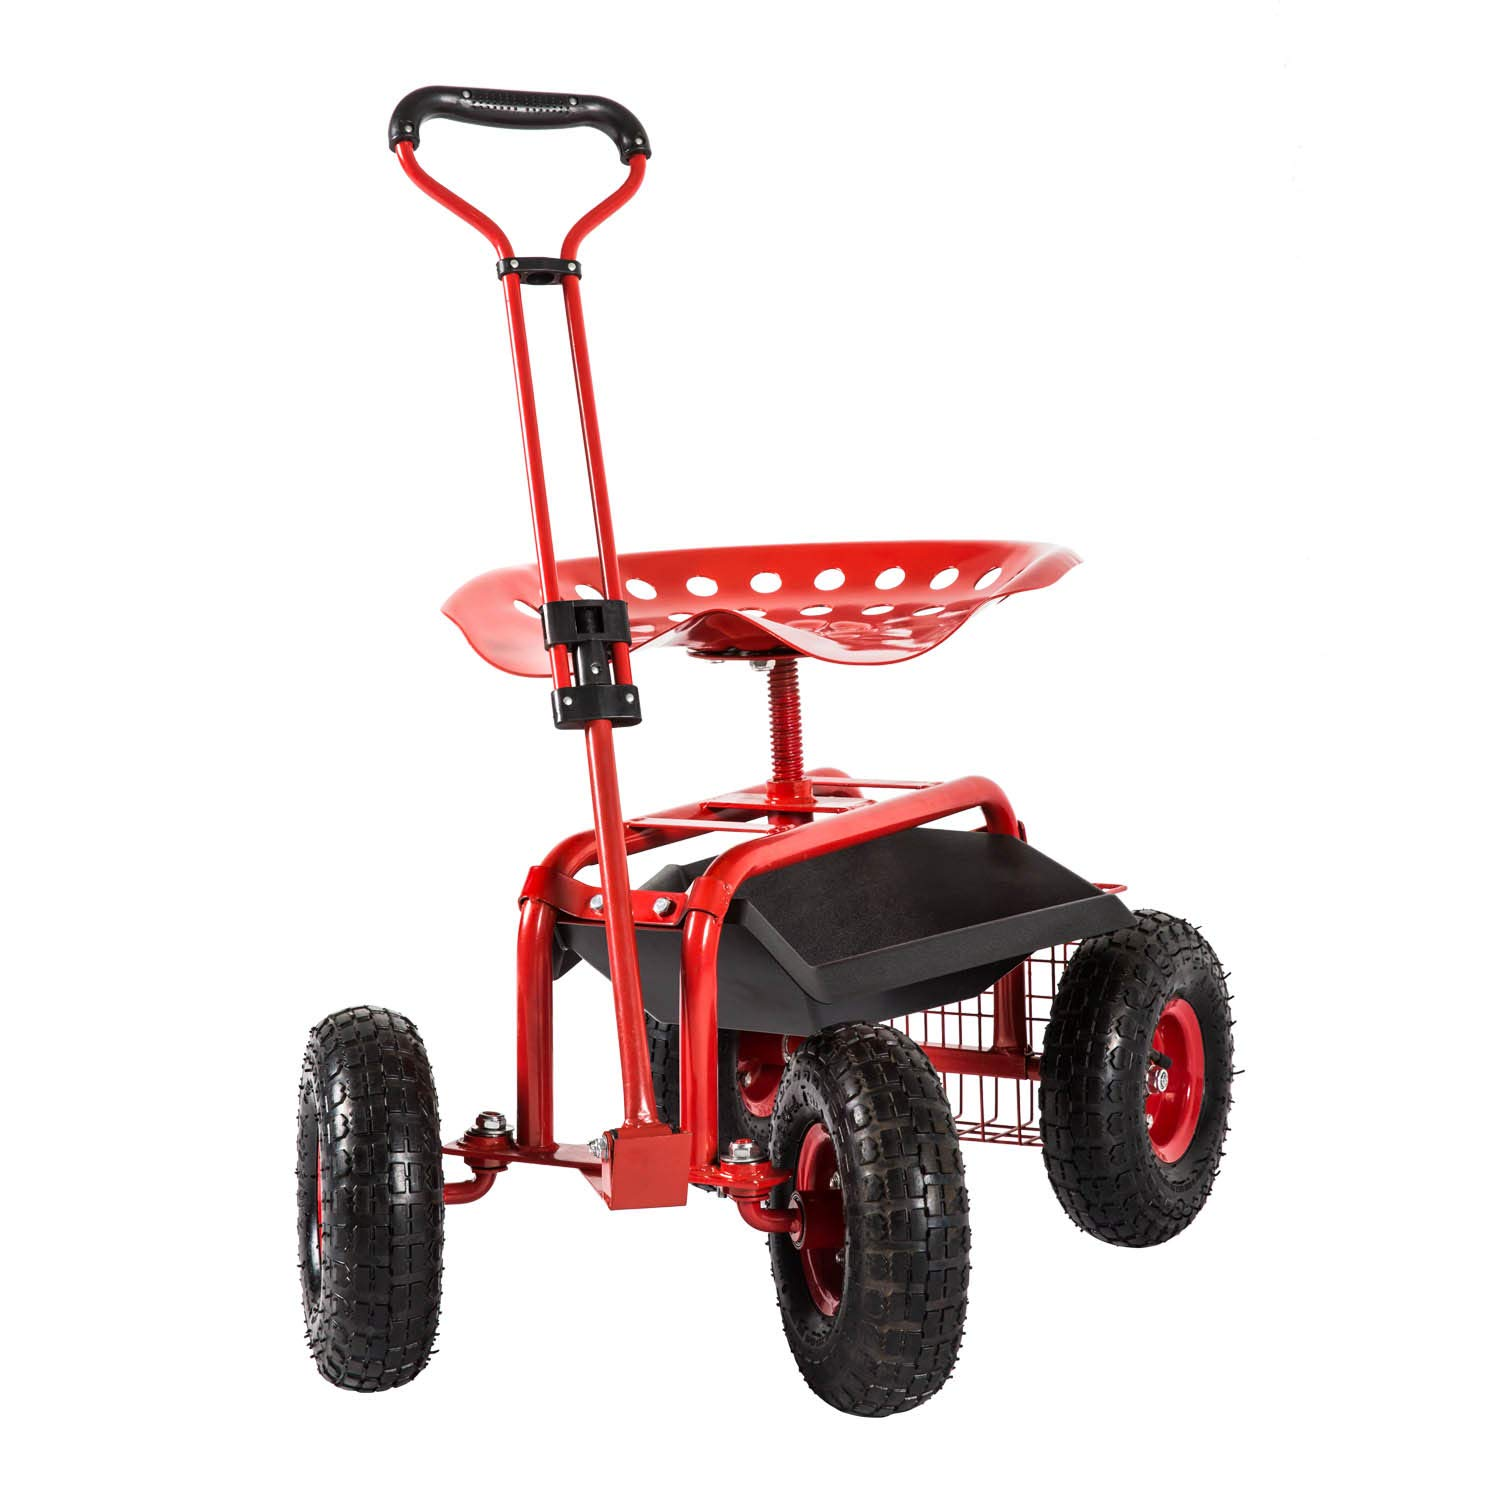 Peach Tree Garden Cart Rolling Work Seat Outdoor Utility Lawn Yard Patio Wagon Scooter for Planting, Adjustable Handle 360 Degree Swivel Seat Red by Peachtree Press Inc